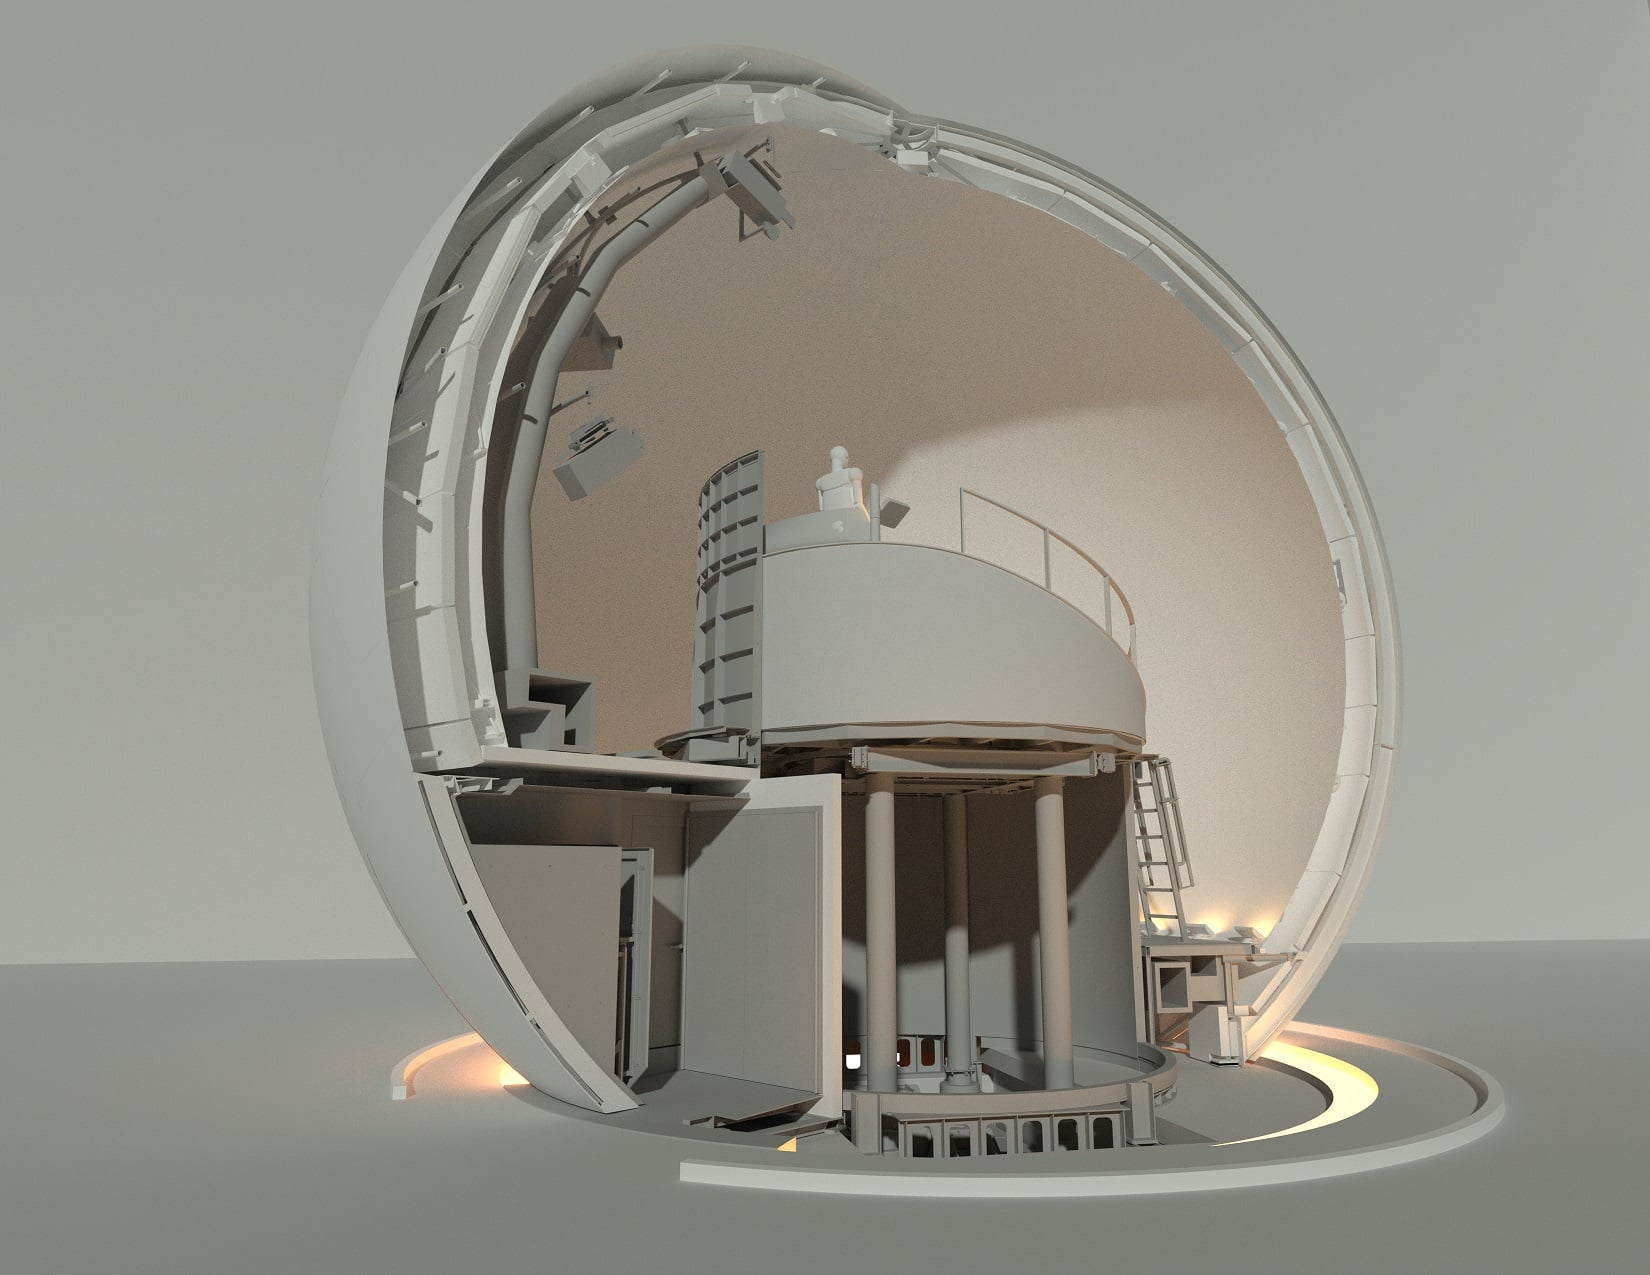 Sphere Turntable & Lift - Rendering